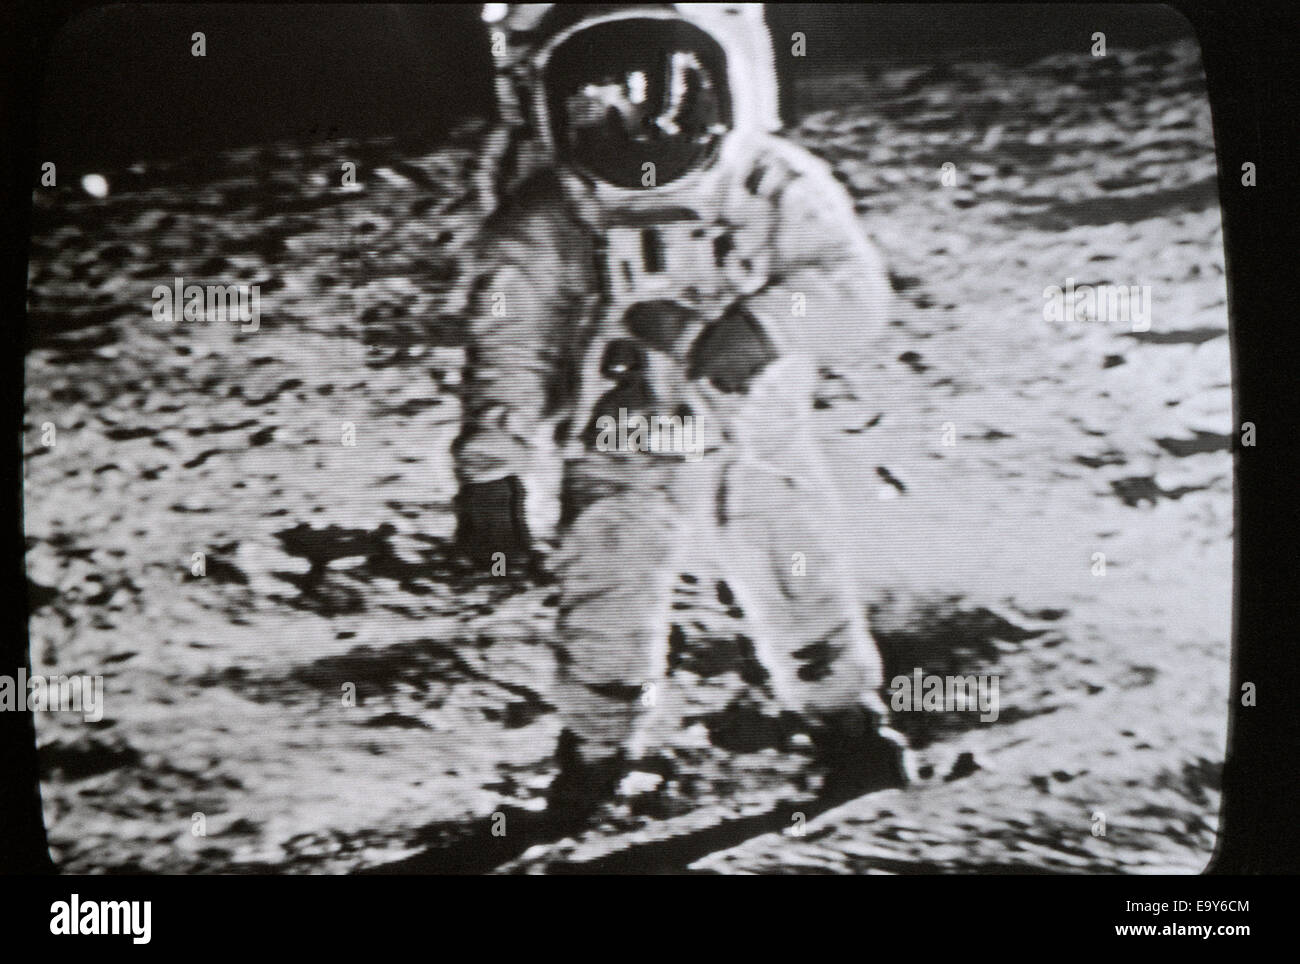 Moon Landing 20 July 1969 Astronaut Photographed In Real Time On The Television Los Angeles